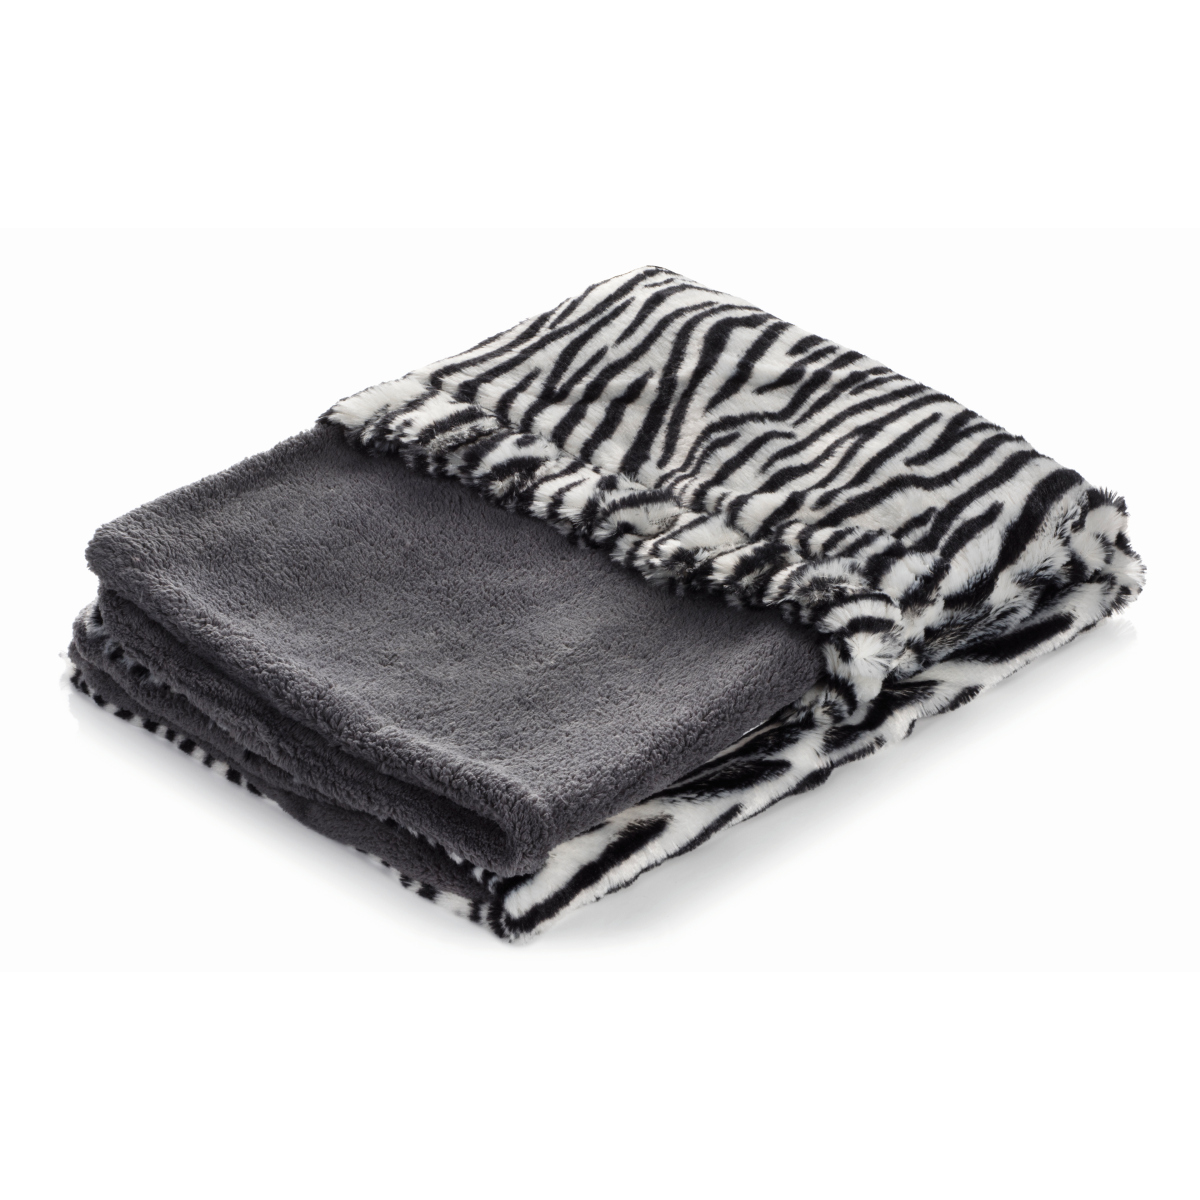 Smart pet love - snuggle bed grijs met zebra motief